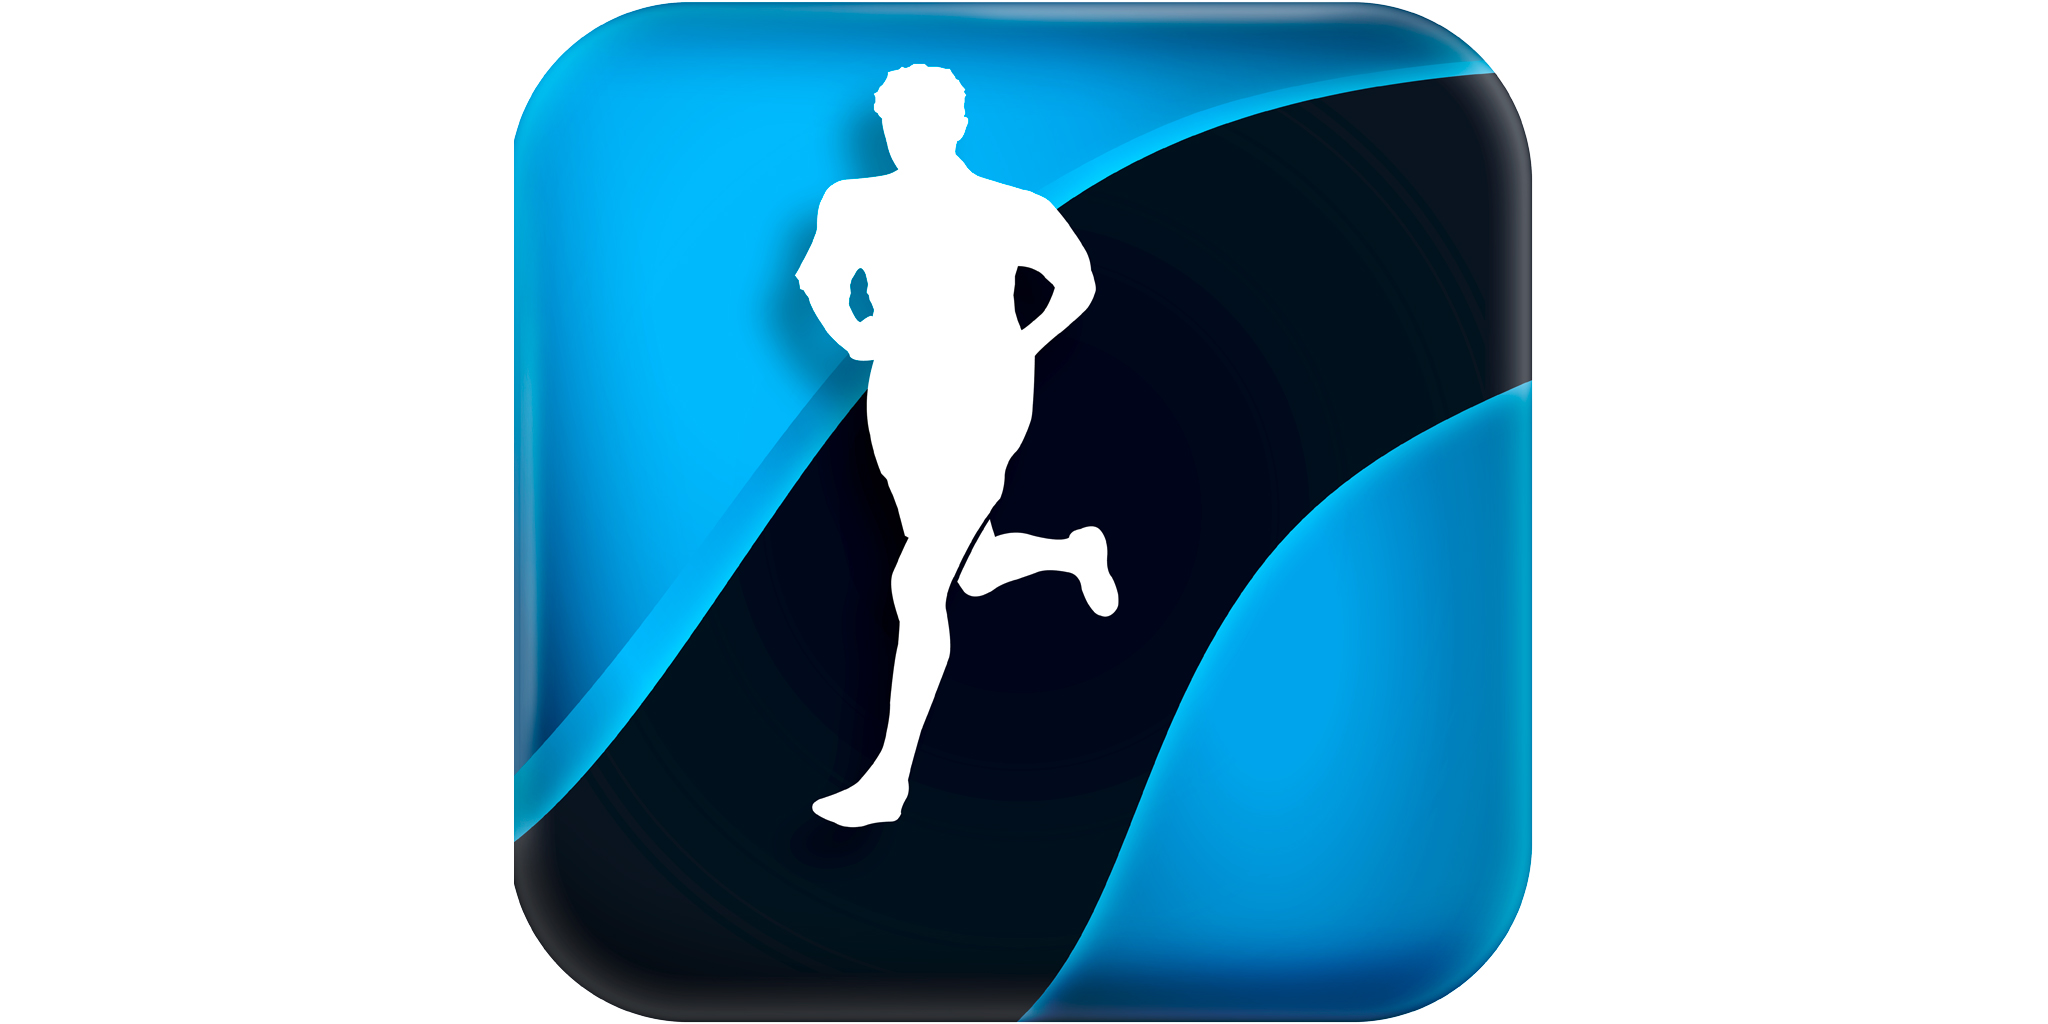 Fitness app developer Runtastic announces a pair of Apple Watch apps  available at launch